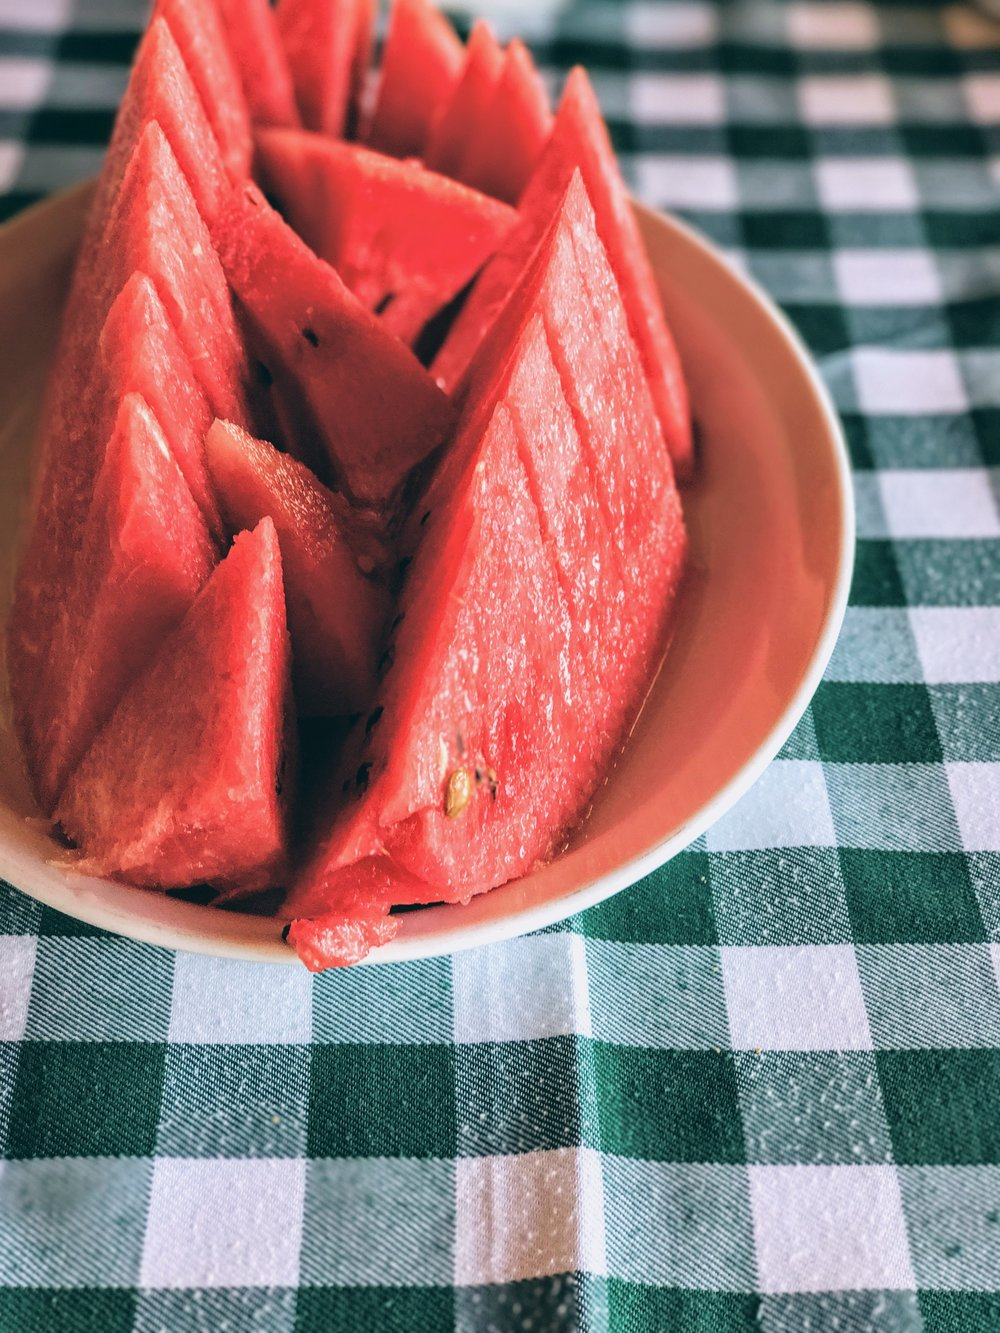 Fresh and cold watermelon